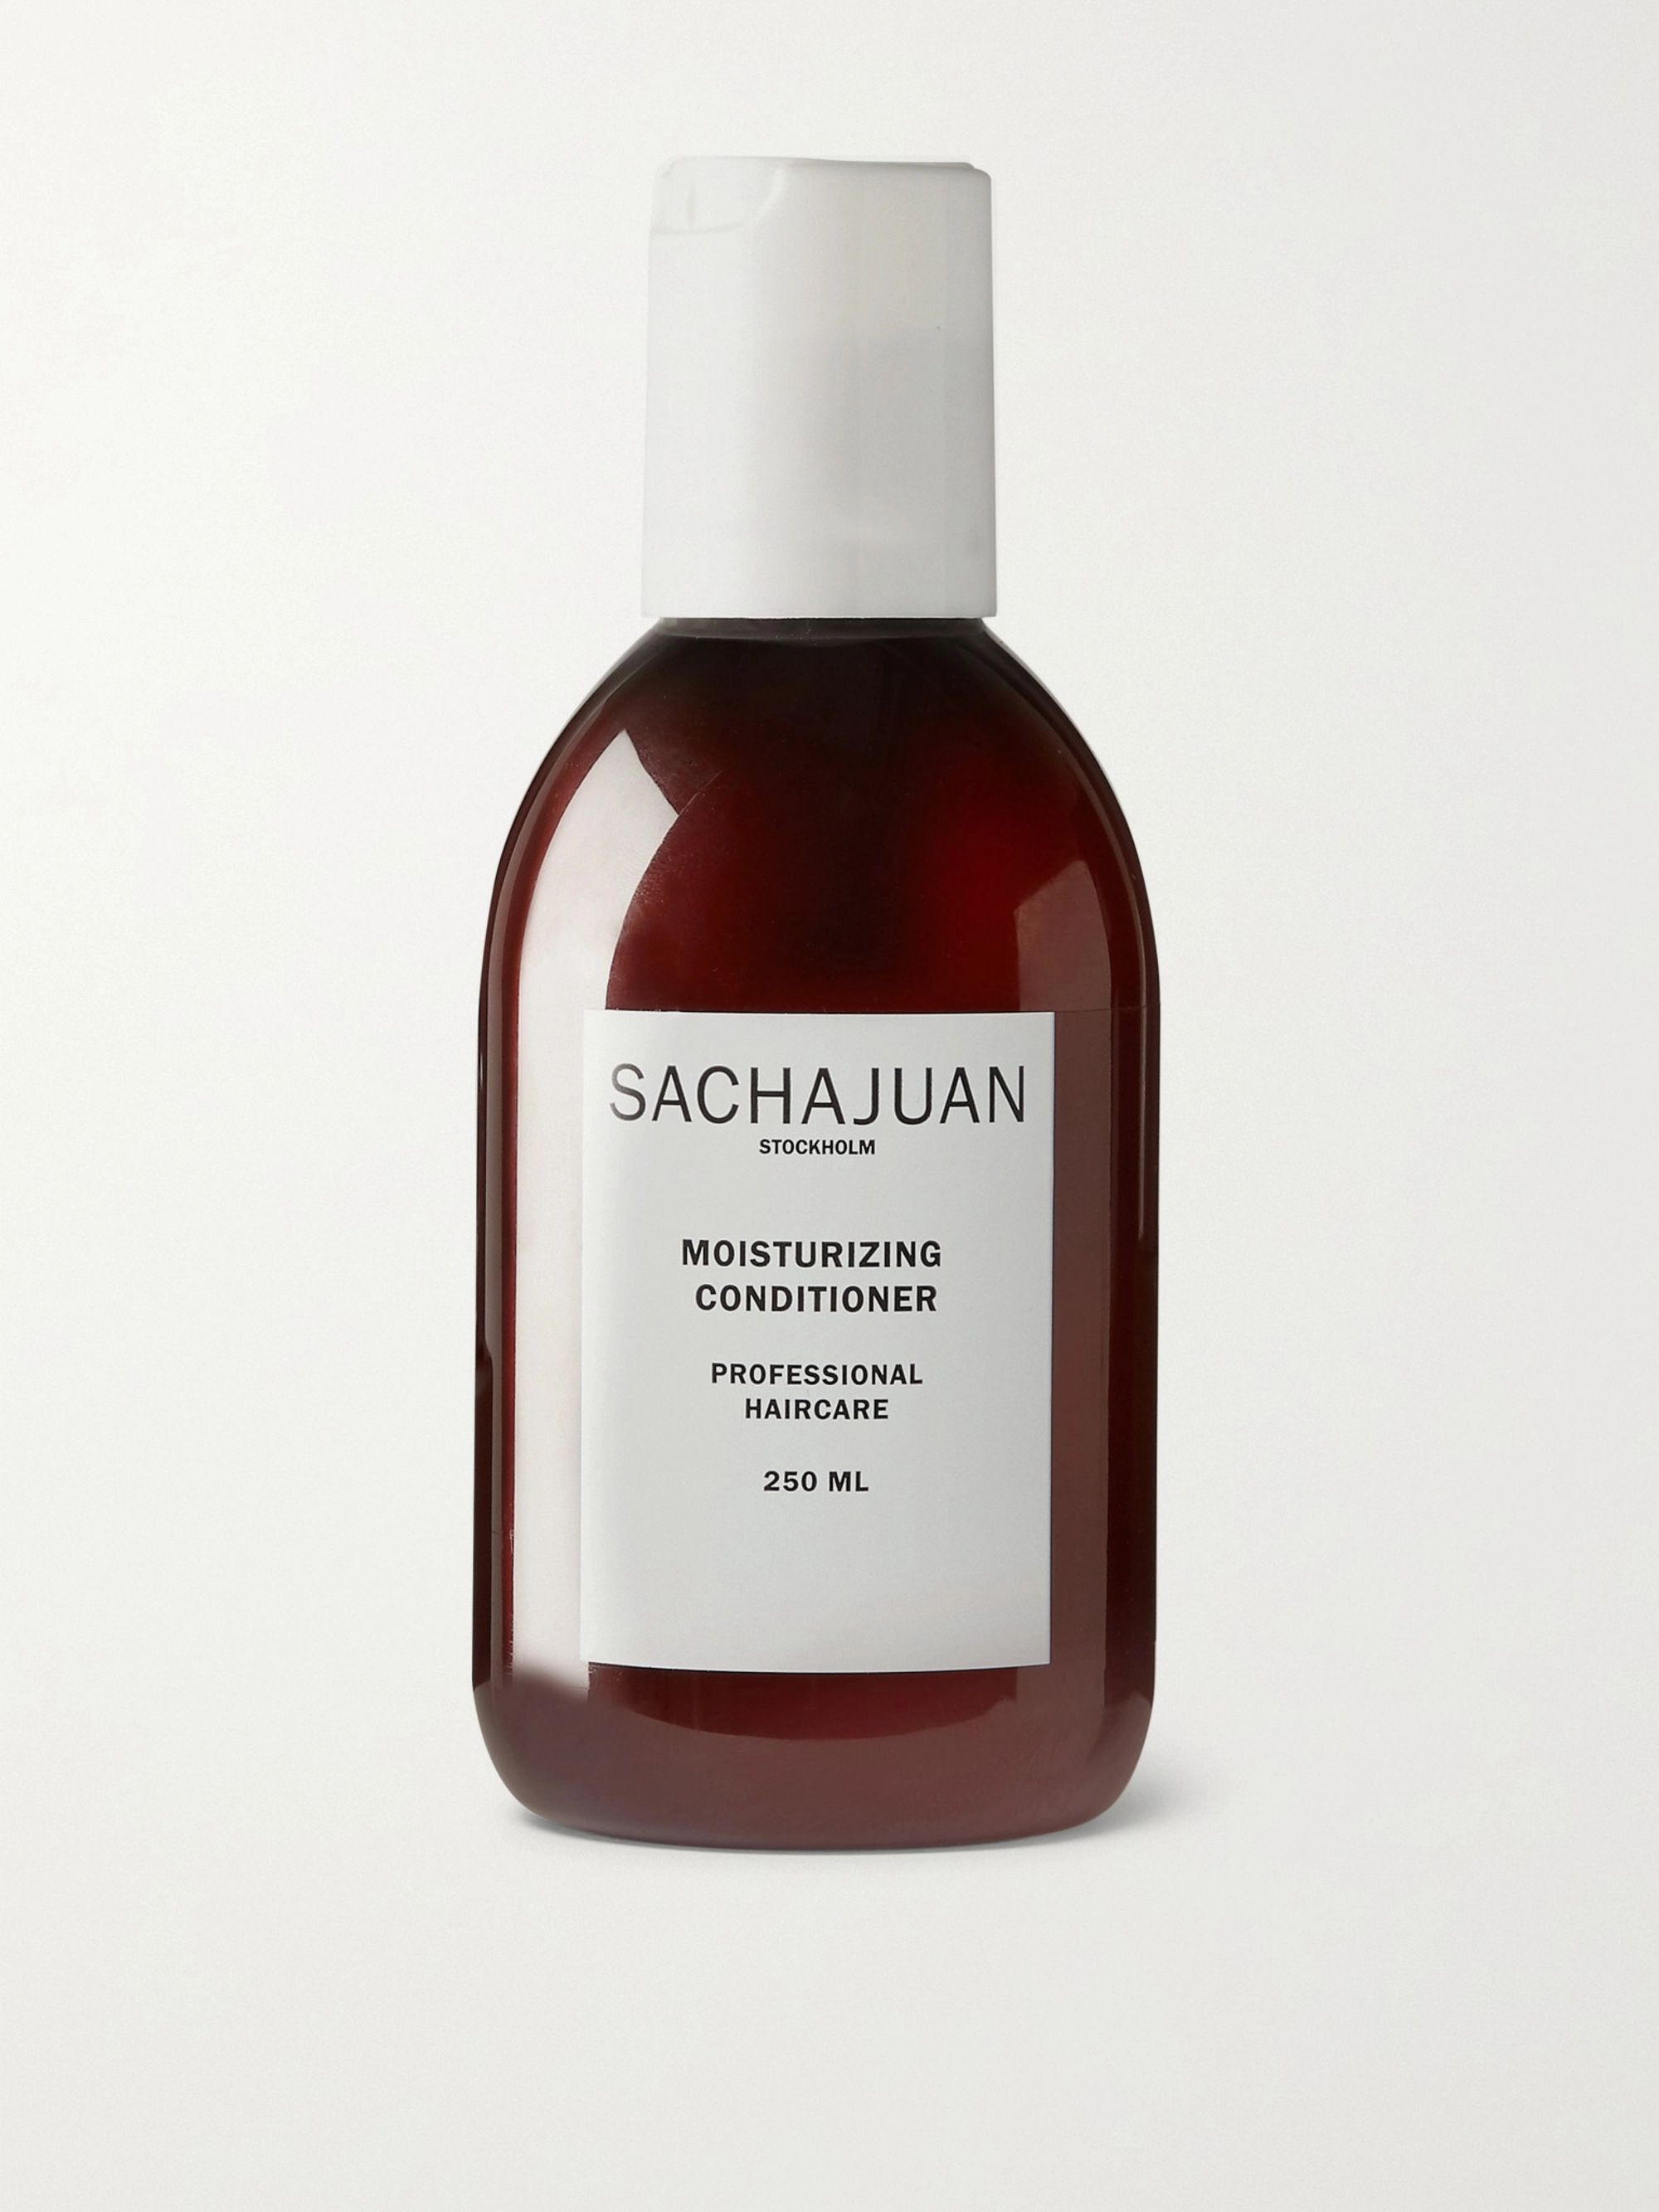 SACHAJUAN Moisturizing Conditioner, 250ml